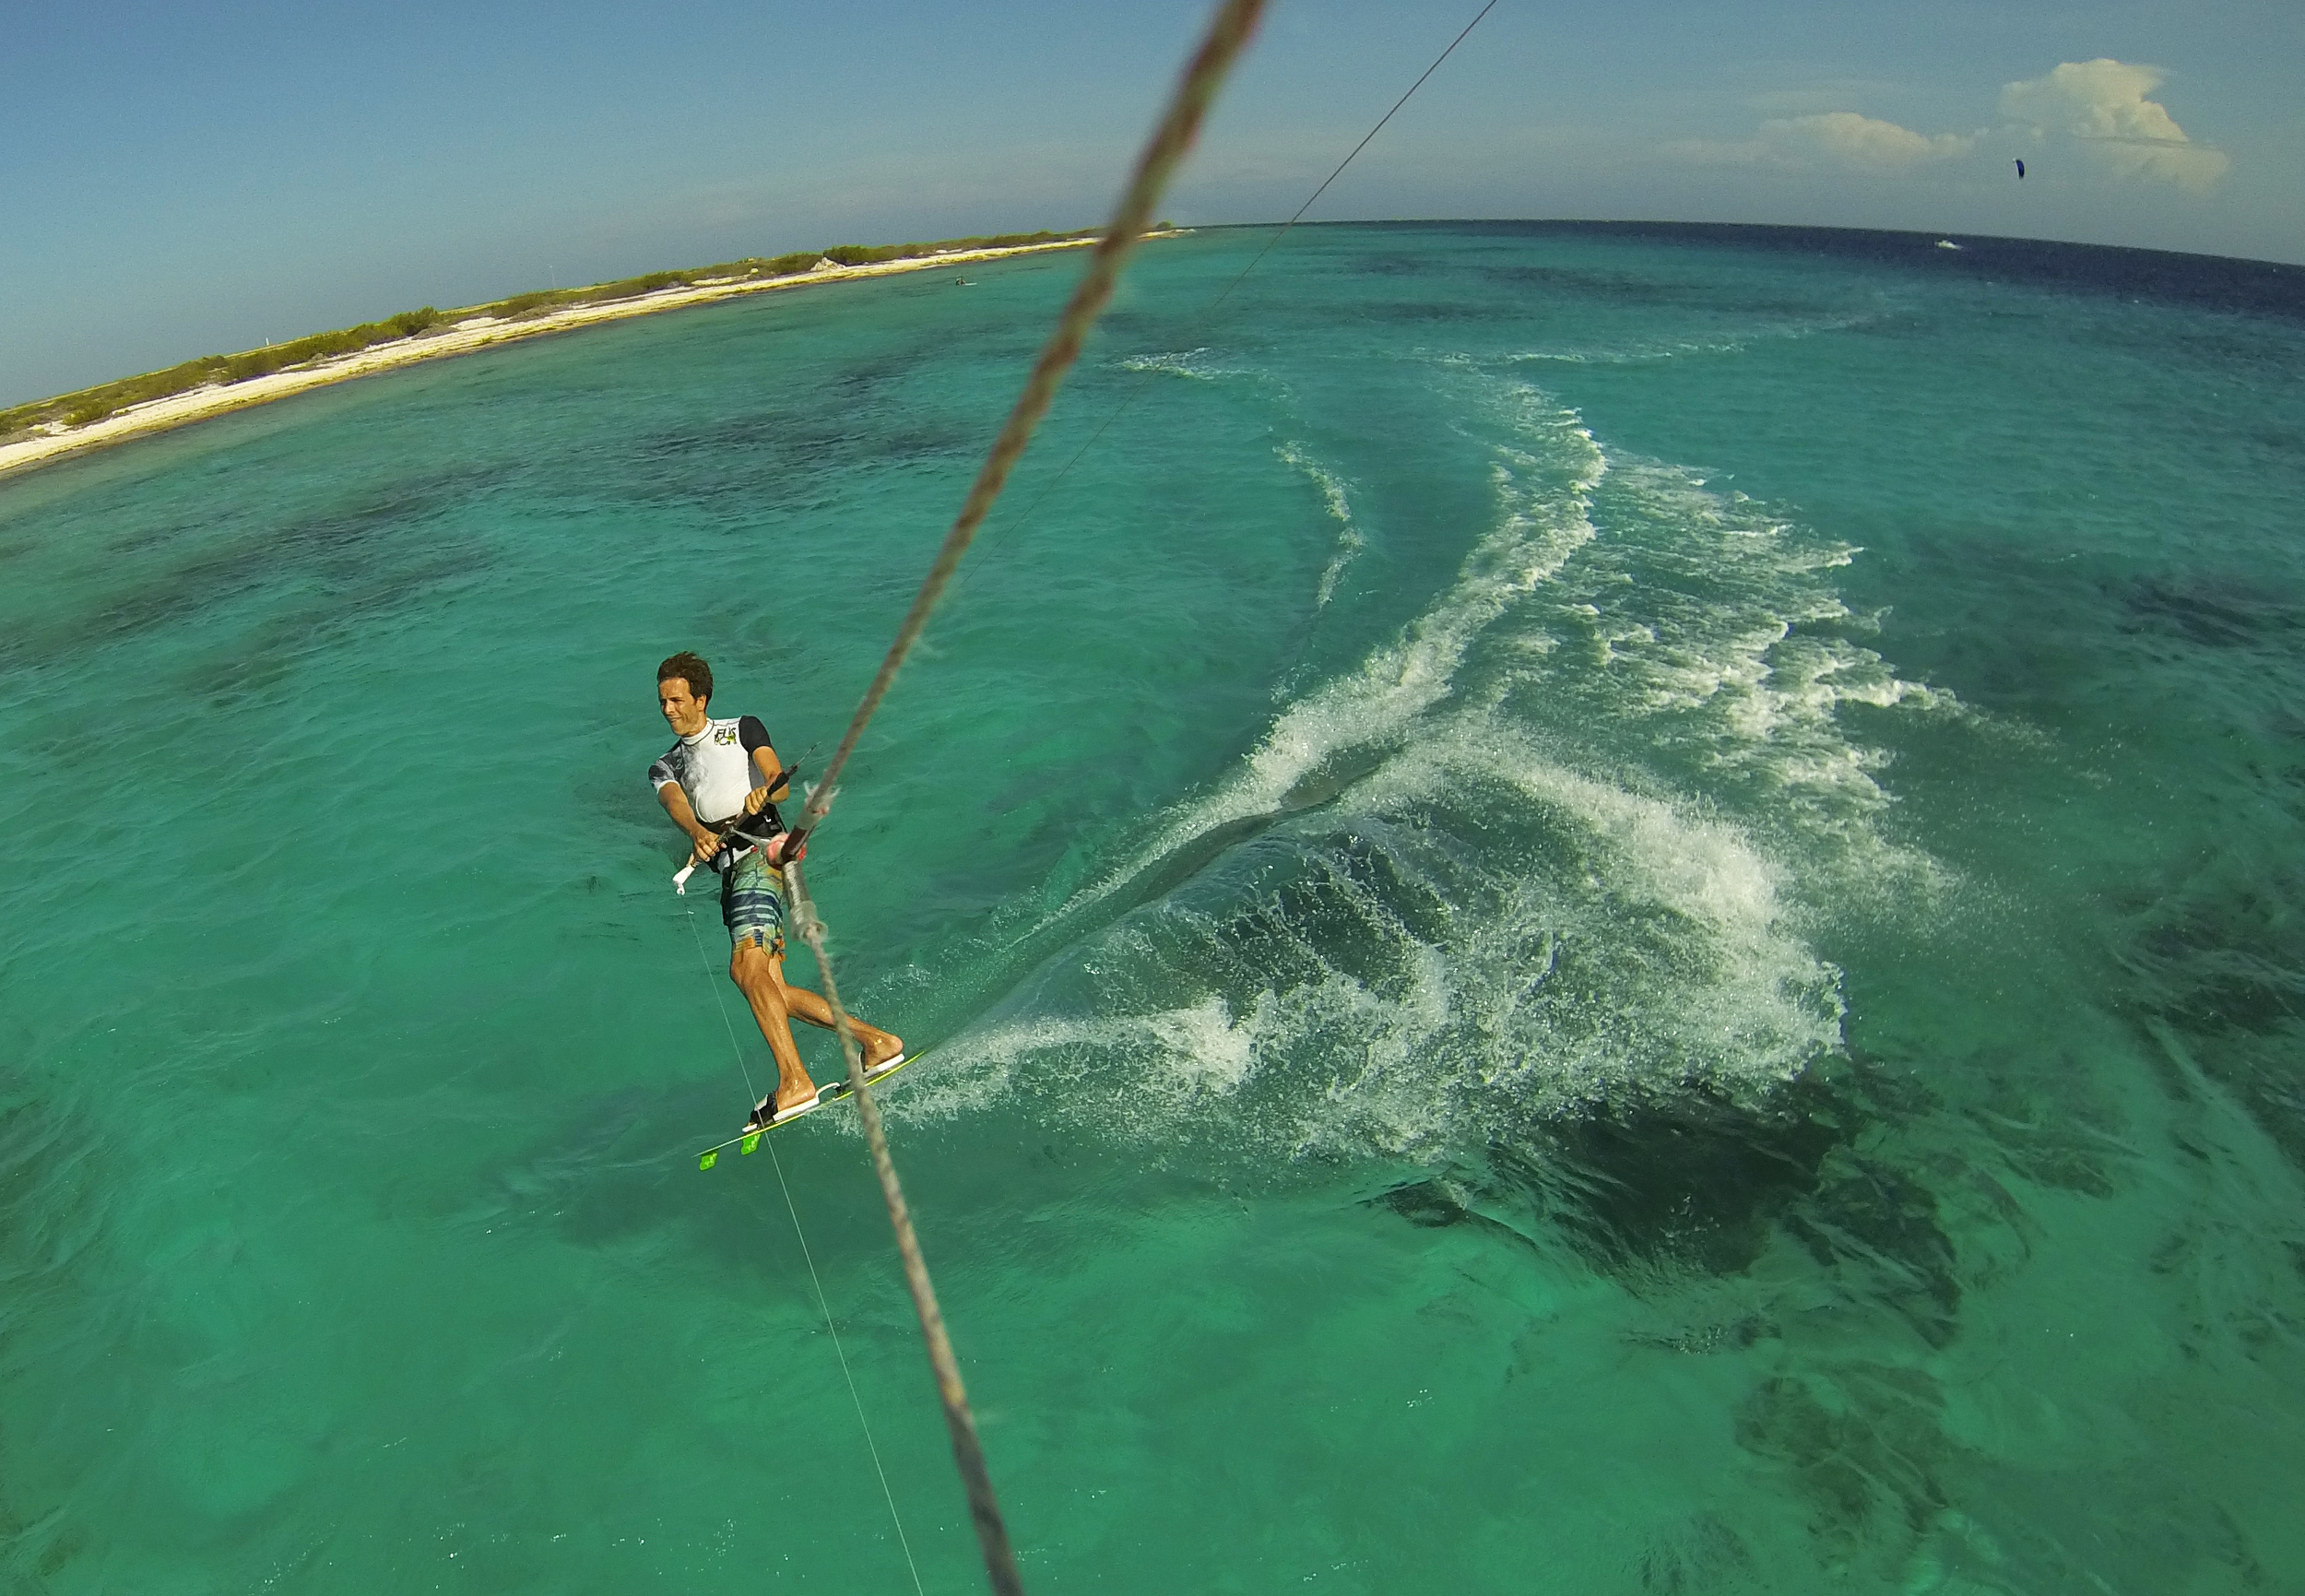 Riding toeside in a breath taking scenery. Every kite session I passed sea turtles getting to the surface and quickly diving under when they saw me coming. Amazing!